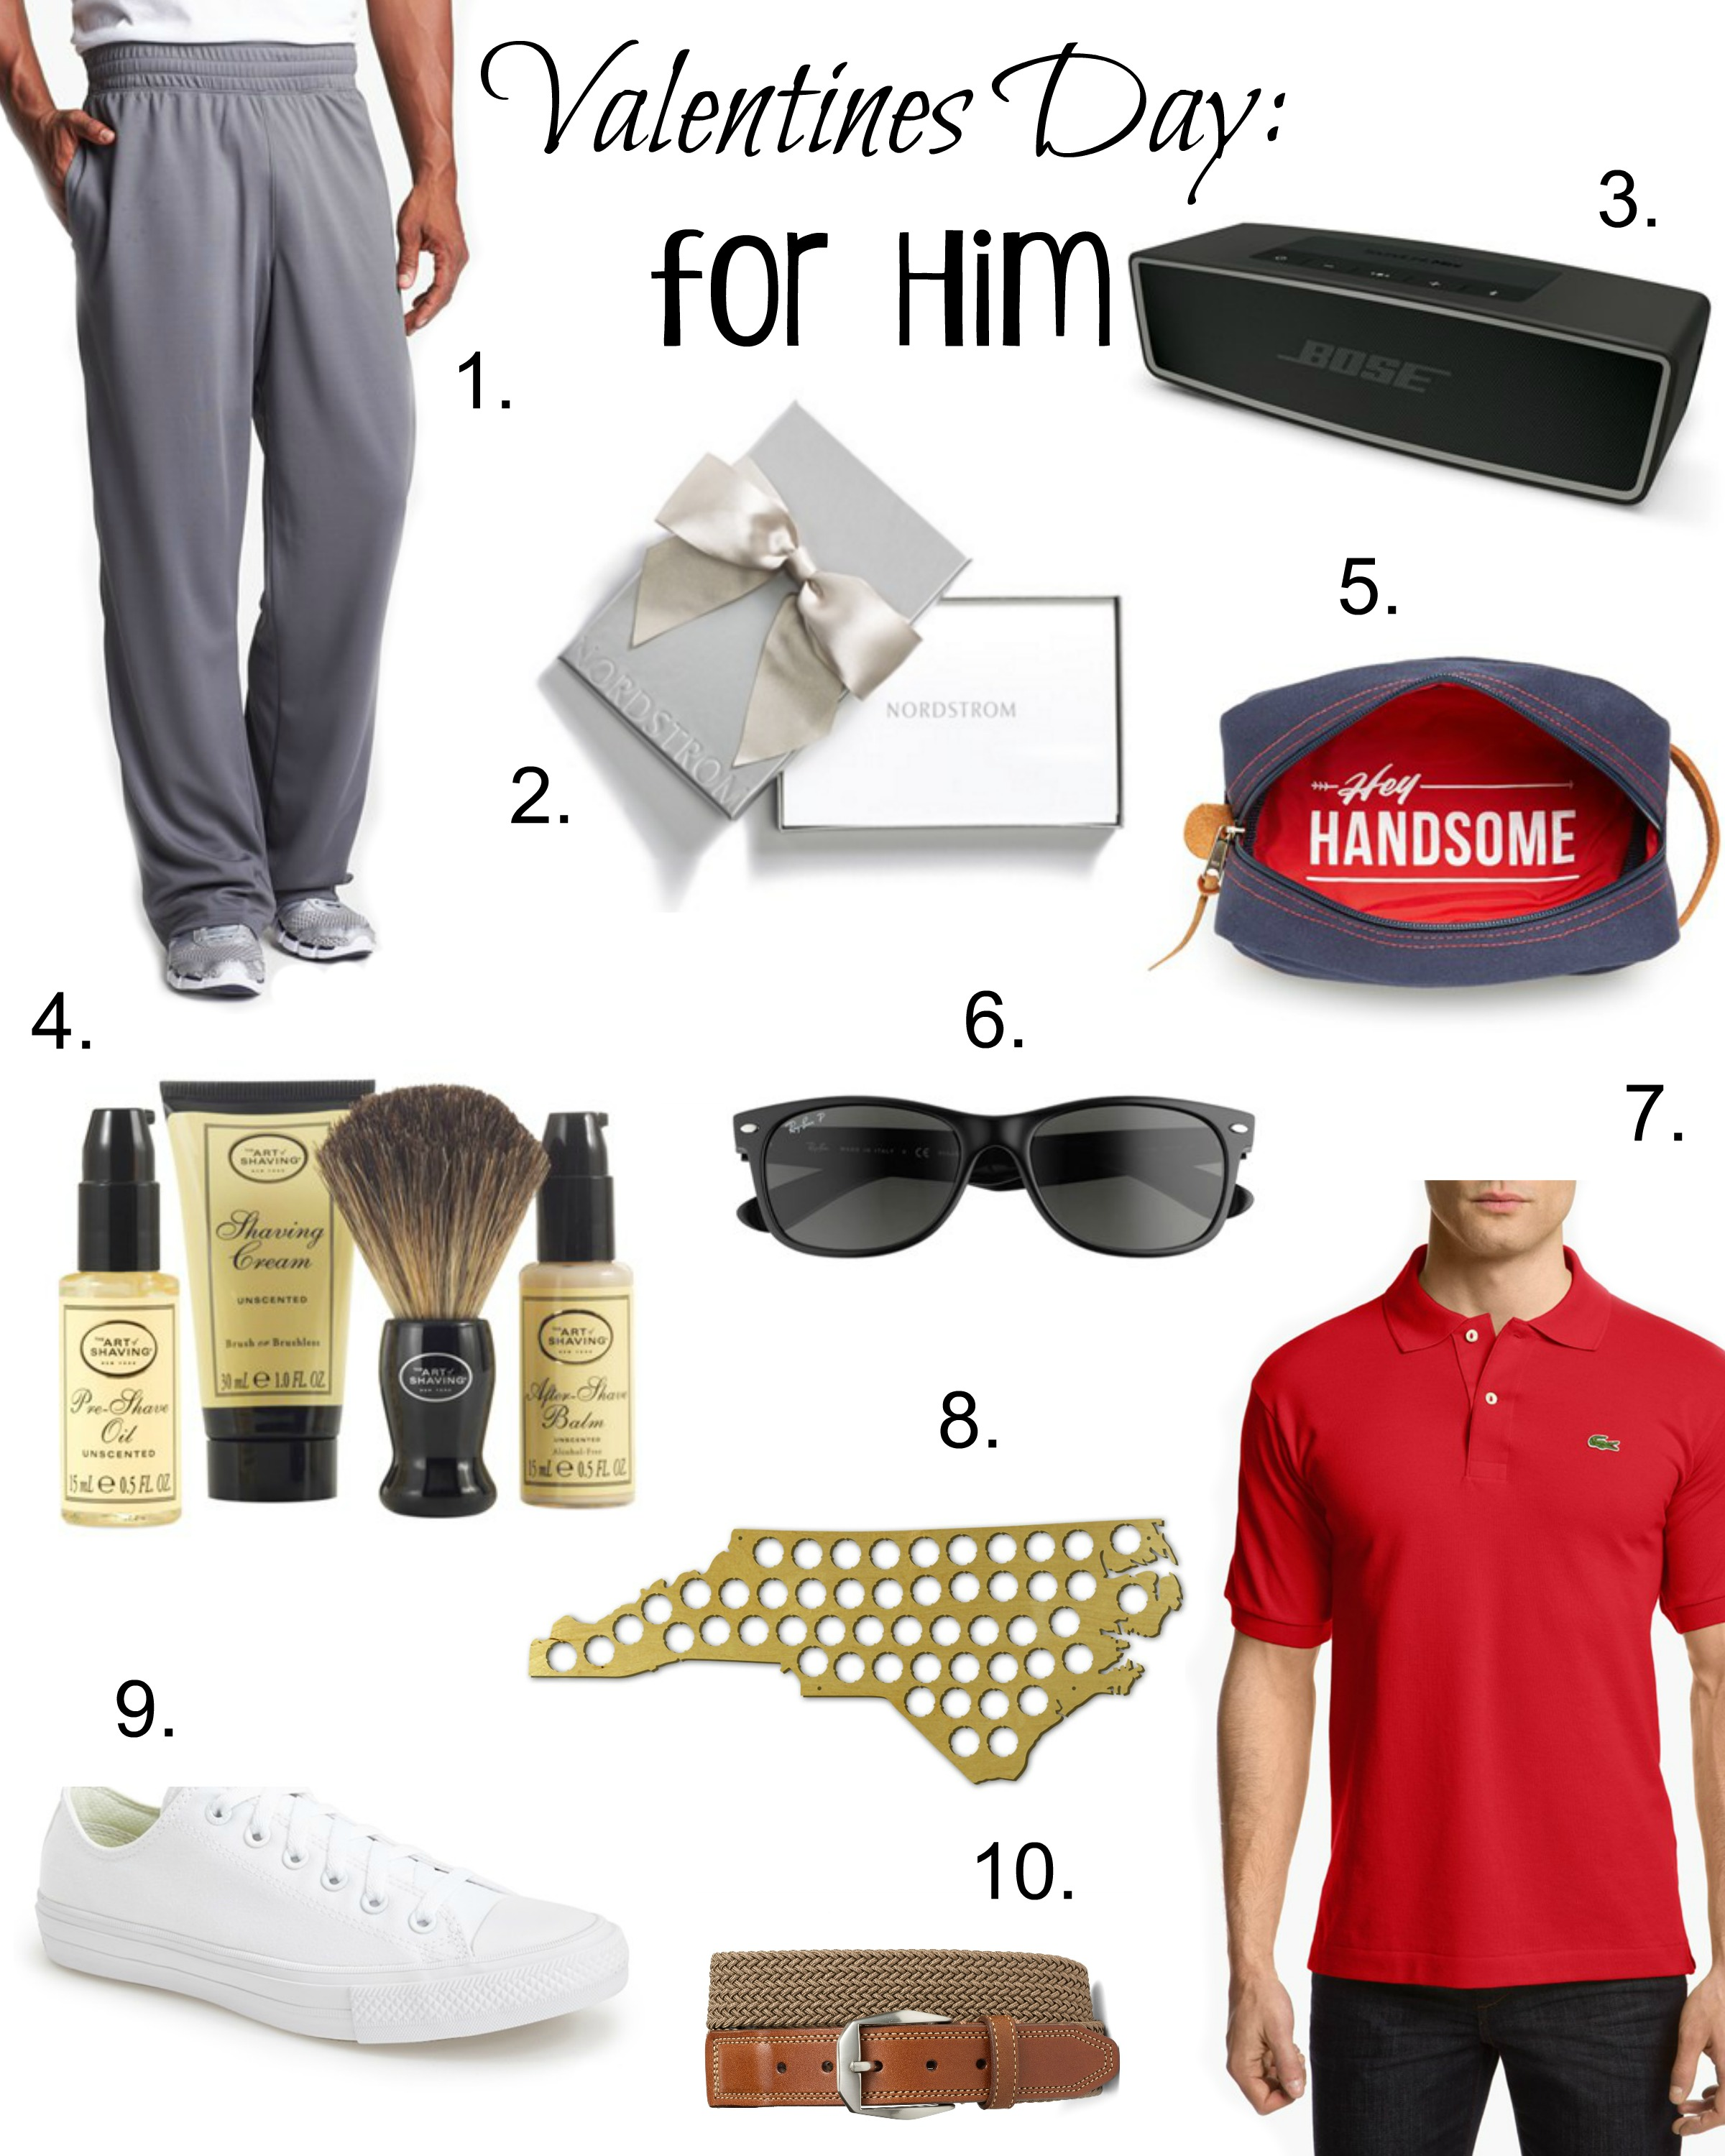 10 of the Best Valentines Day Gifts for Him